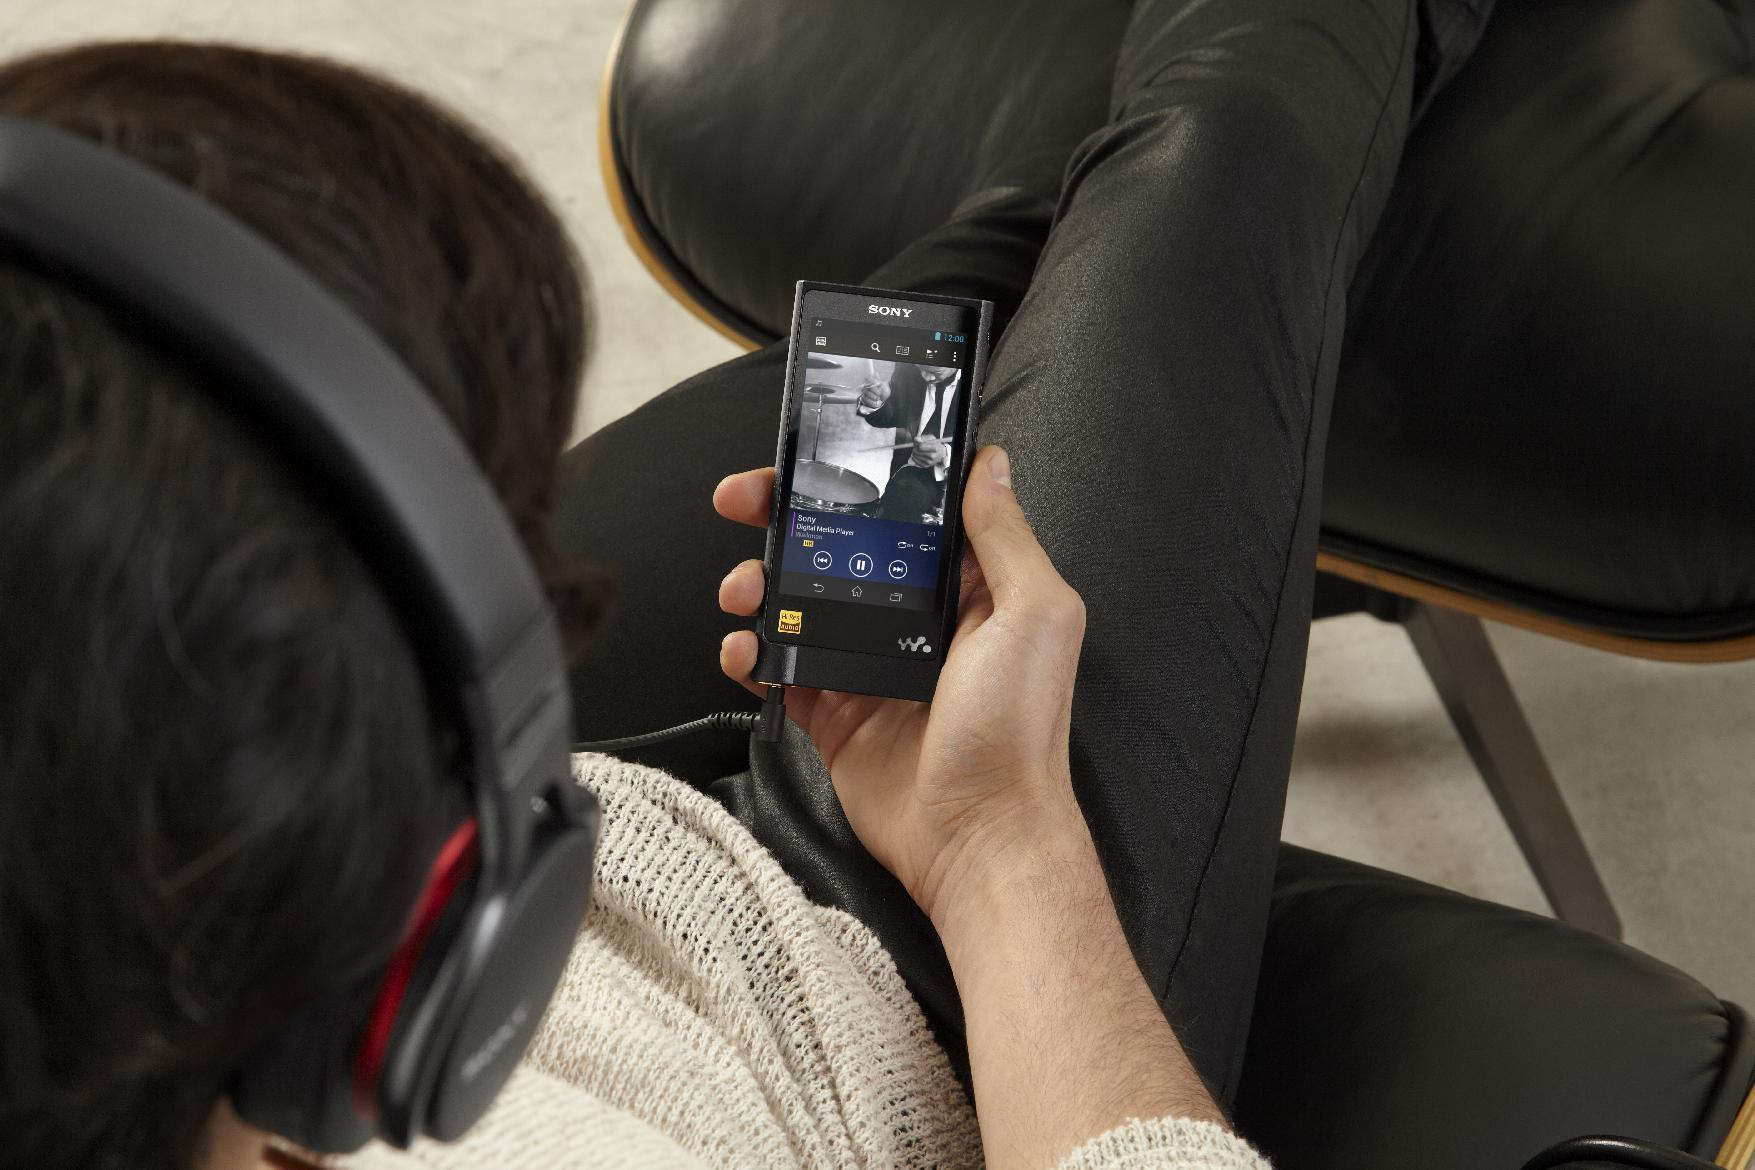 On-sale date, price revealed for Sony's new Walkman for high resolution music